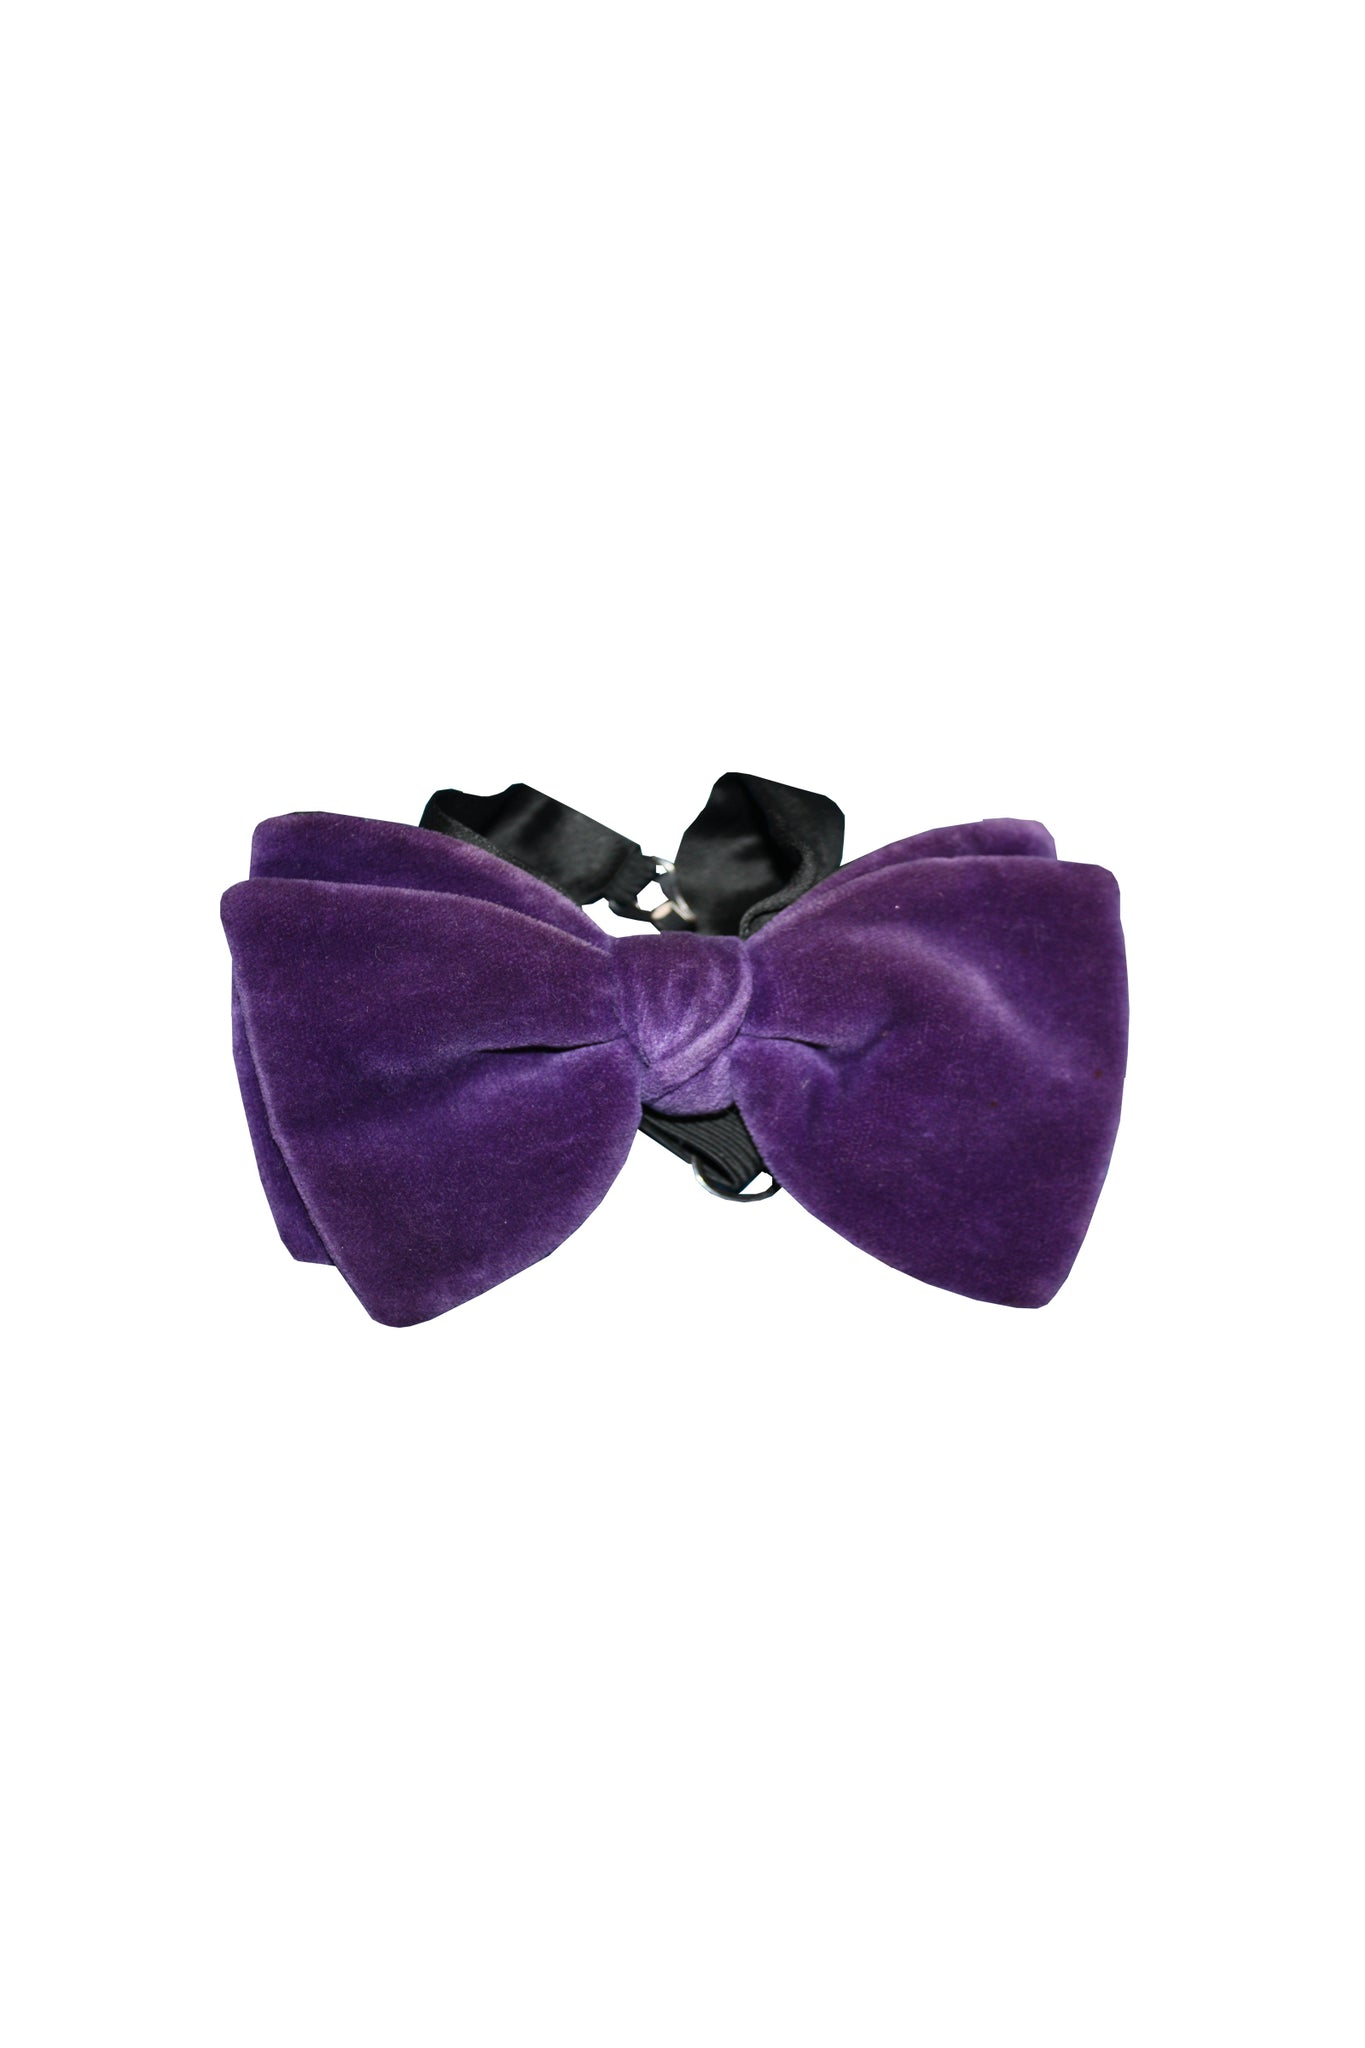 Micky bow tie